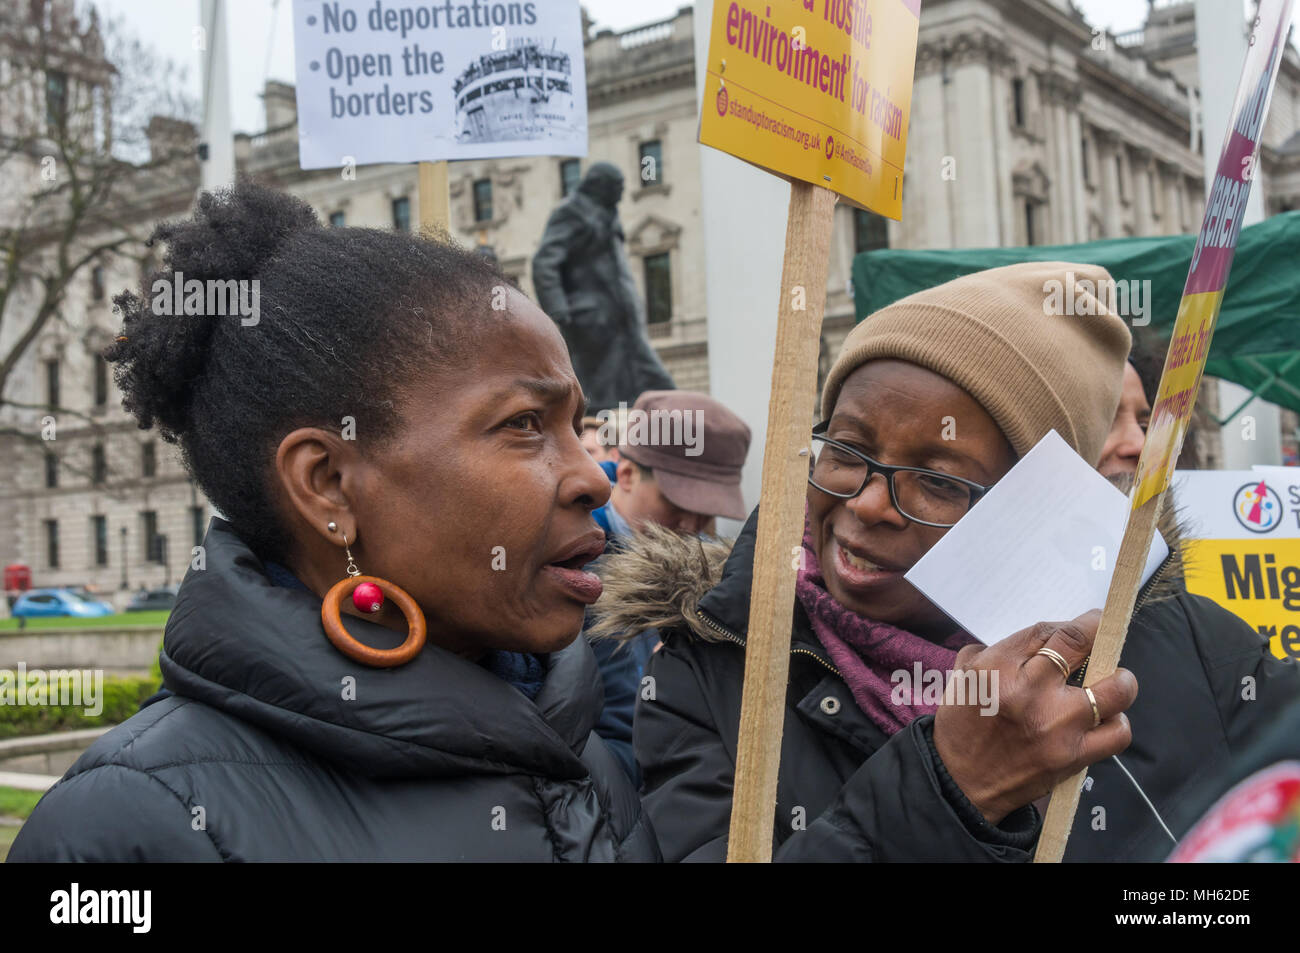 London, UK. 30th April 2018.  People talk in the crowd at the protest in support of the petition calling for an end to the deportations of migrants in the 'Windrush generation' who arrived in Britain between 1948 and 1971. It calls on the government to change the burden of proof which means they are now required to prove their right to remain, and to provide compensation for any loss and hurt.. re for many years, paying taxes and raising families here and have long re Credit: Peter Marshall/Alamy Live News - Stock Image